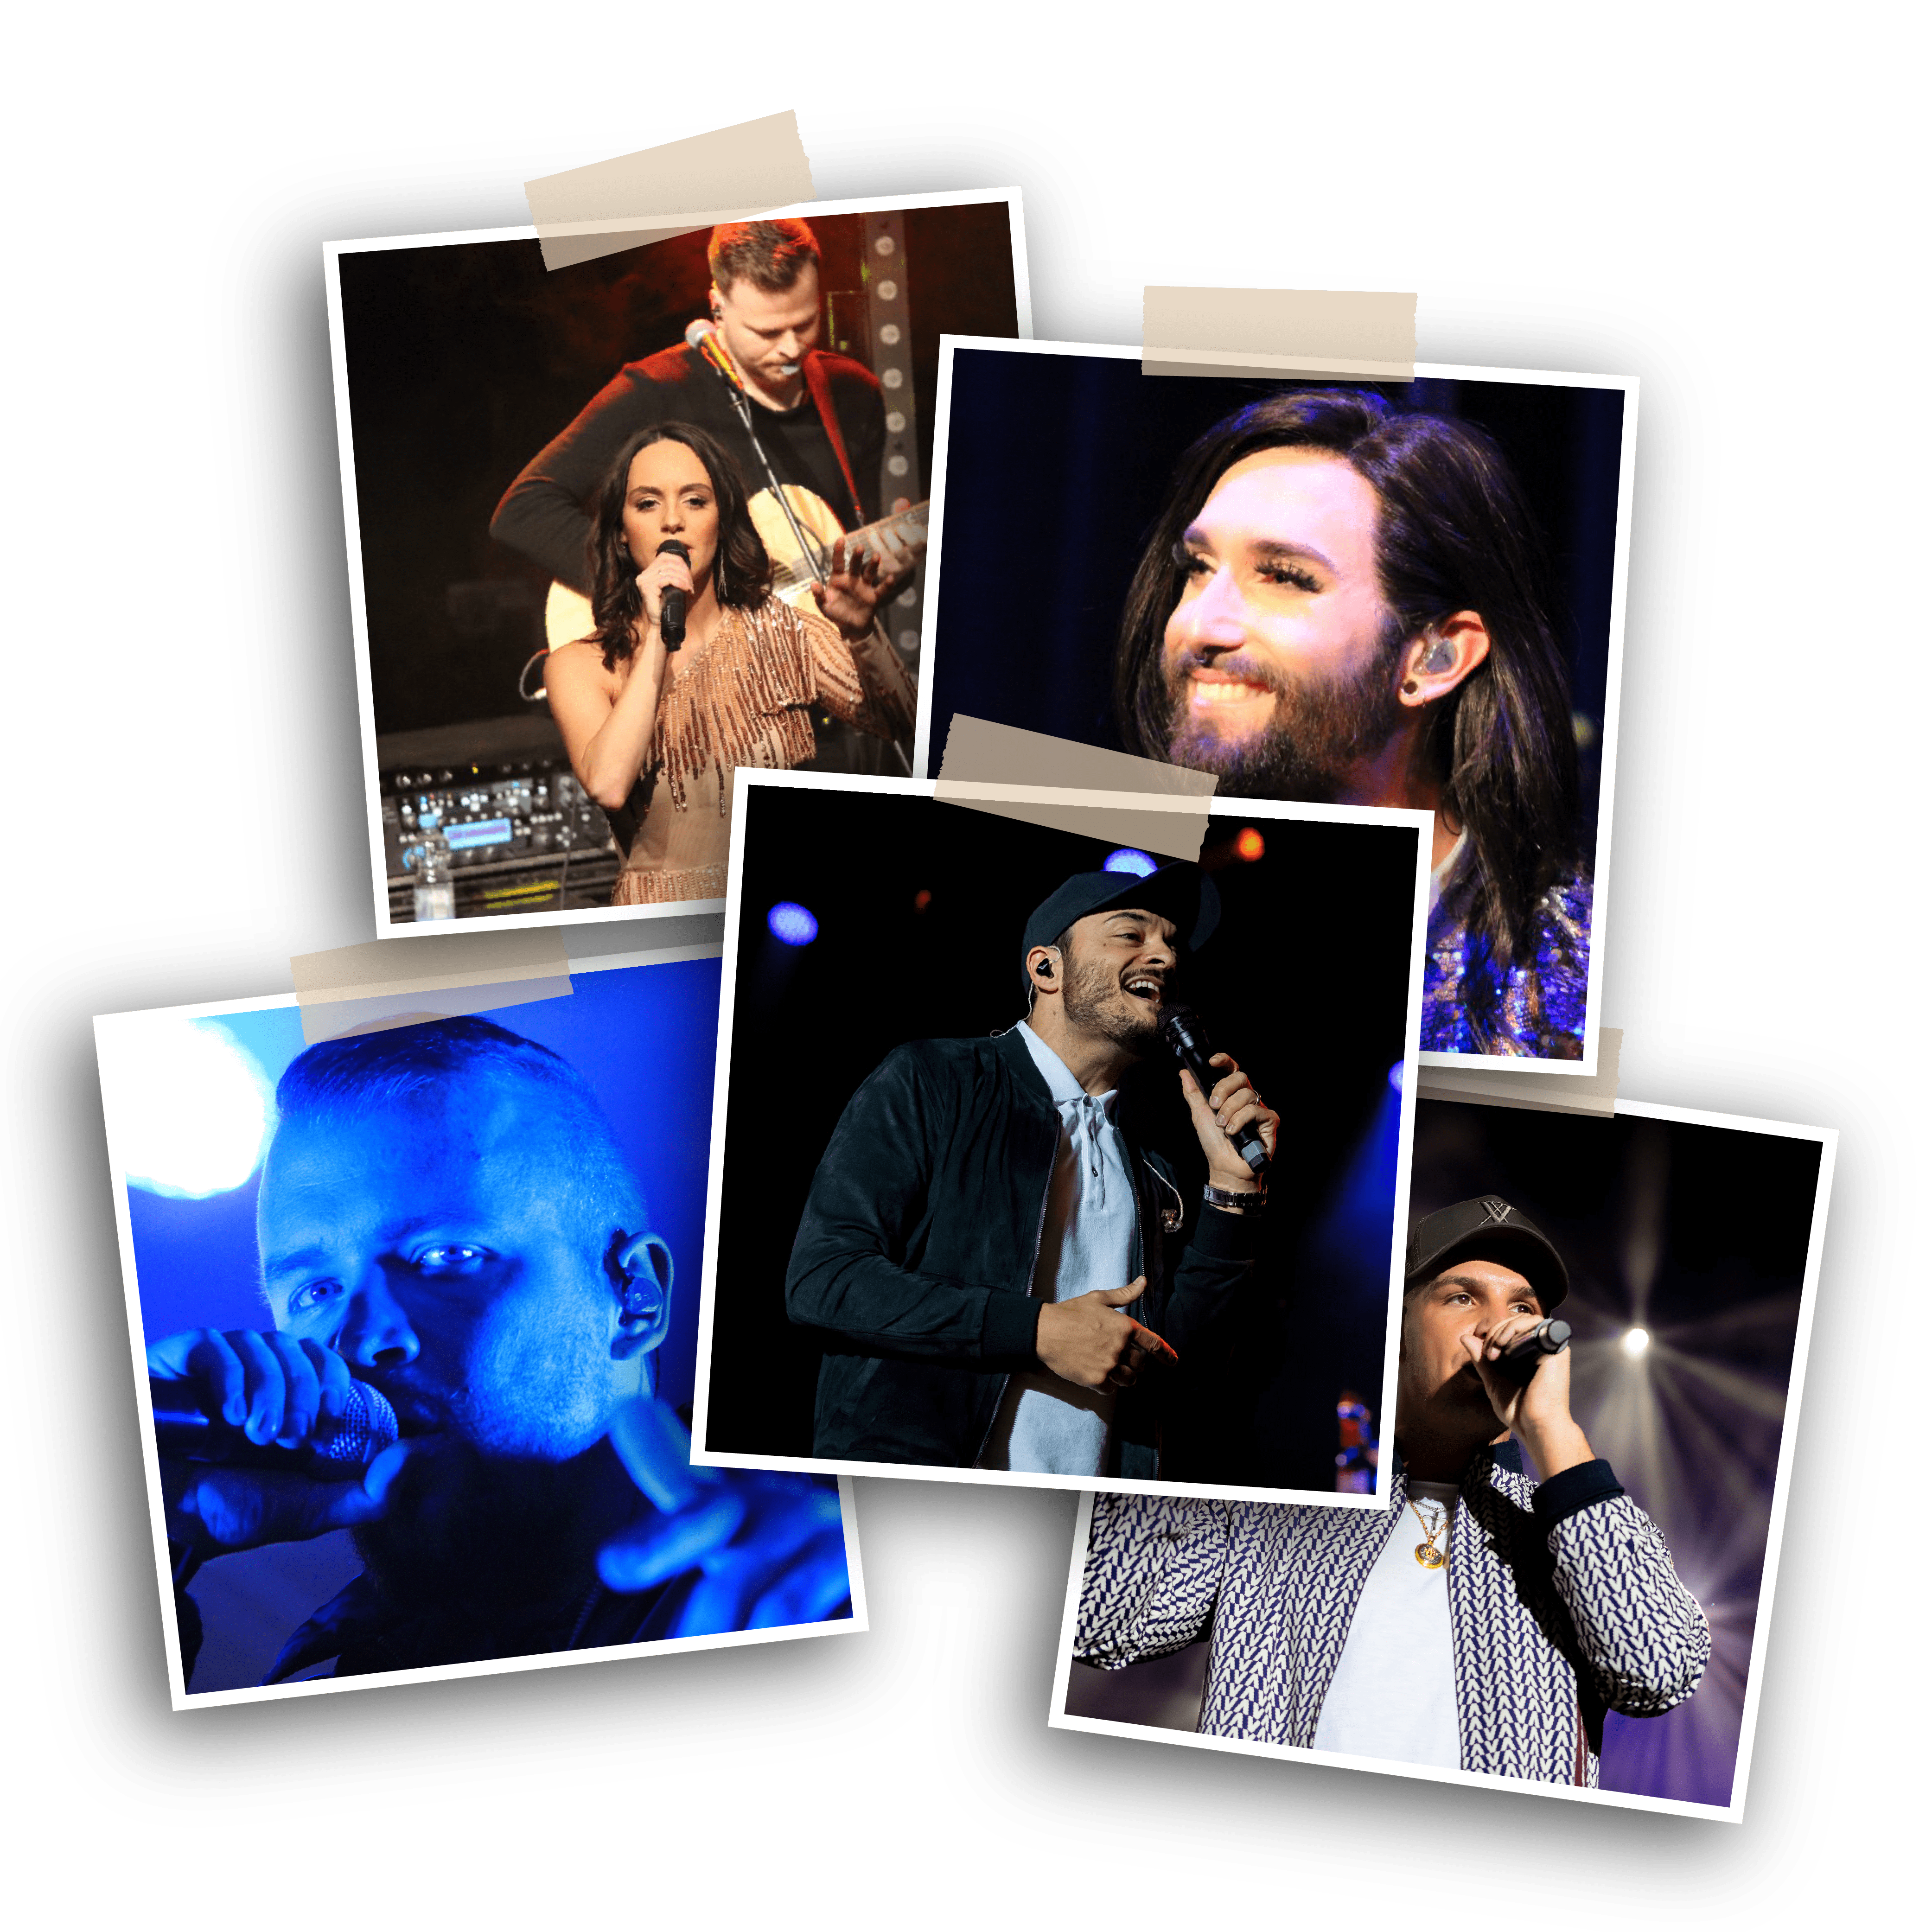 image collage of different shows and events